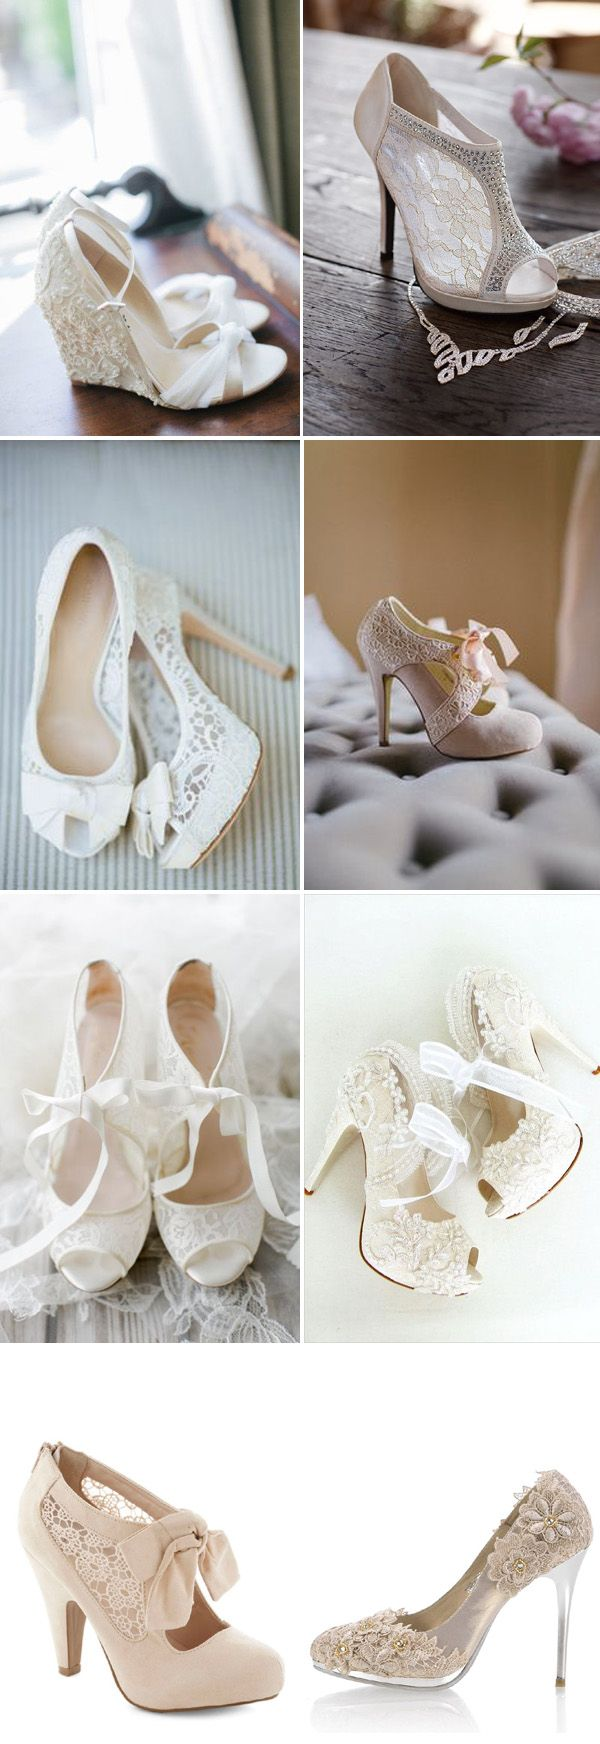 lace wedding heels and shoes / http://www.deerpearlflowers.com/most-wanted-wedding-shoes-for-bride/